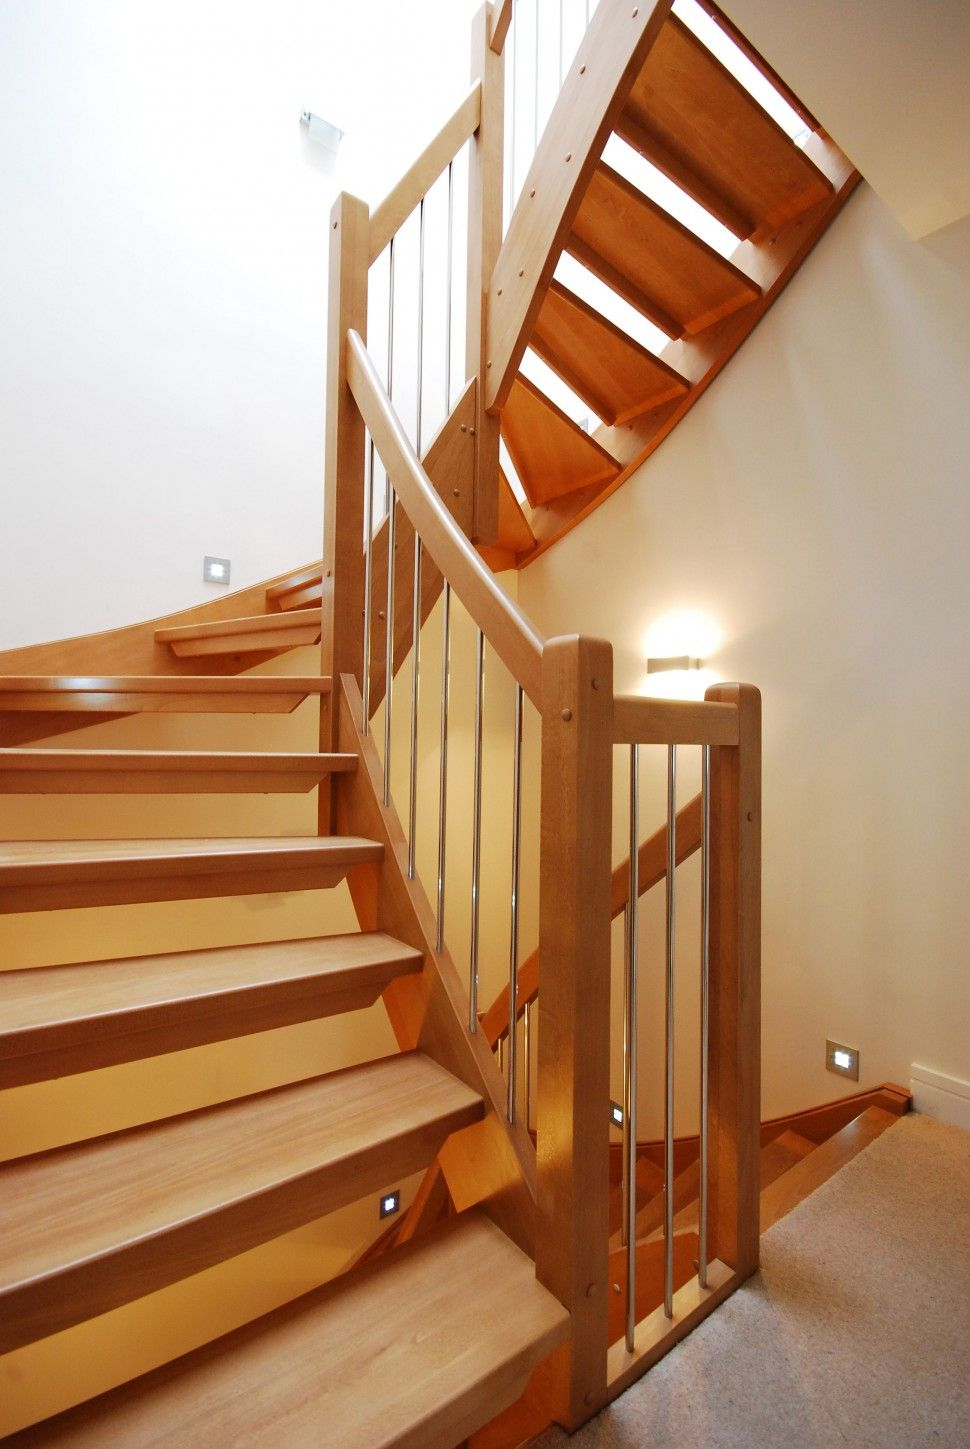 Painted Wood Stairs Wooden Handrail For Stairs For Classic Look Handrail Design Plans